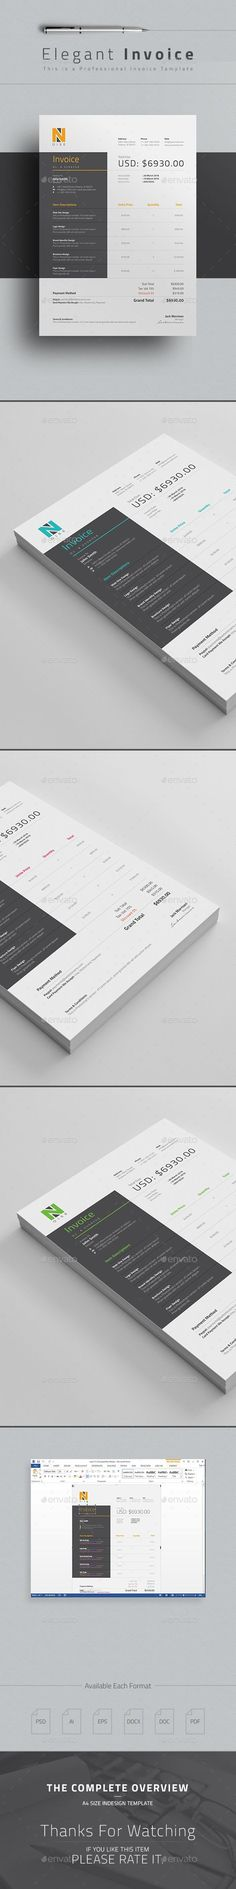 Invoice • Available here → http://graphicriver.net/item/invoice/15274575?s_rank=168&ref=pxcr